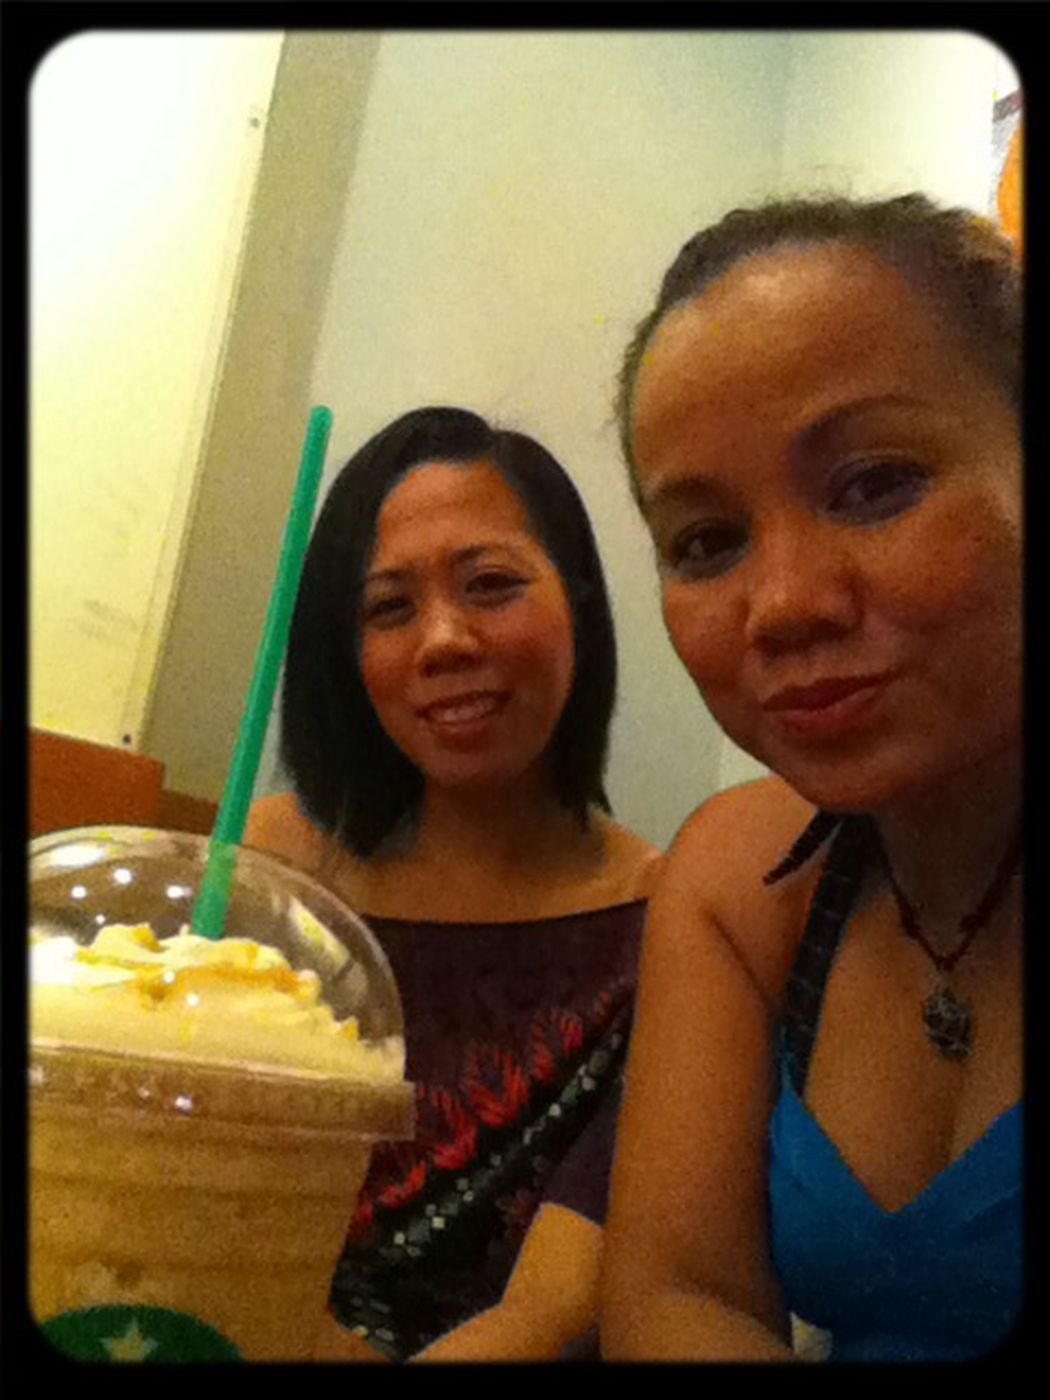 cafe latte ? having moment alone with my sister from another mother..??